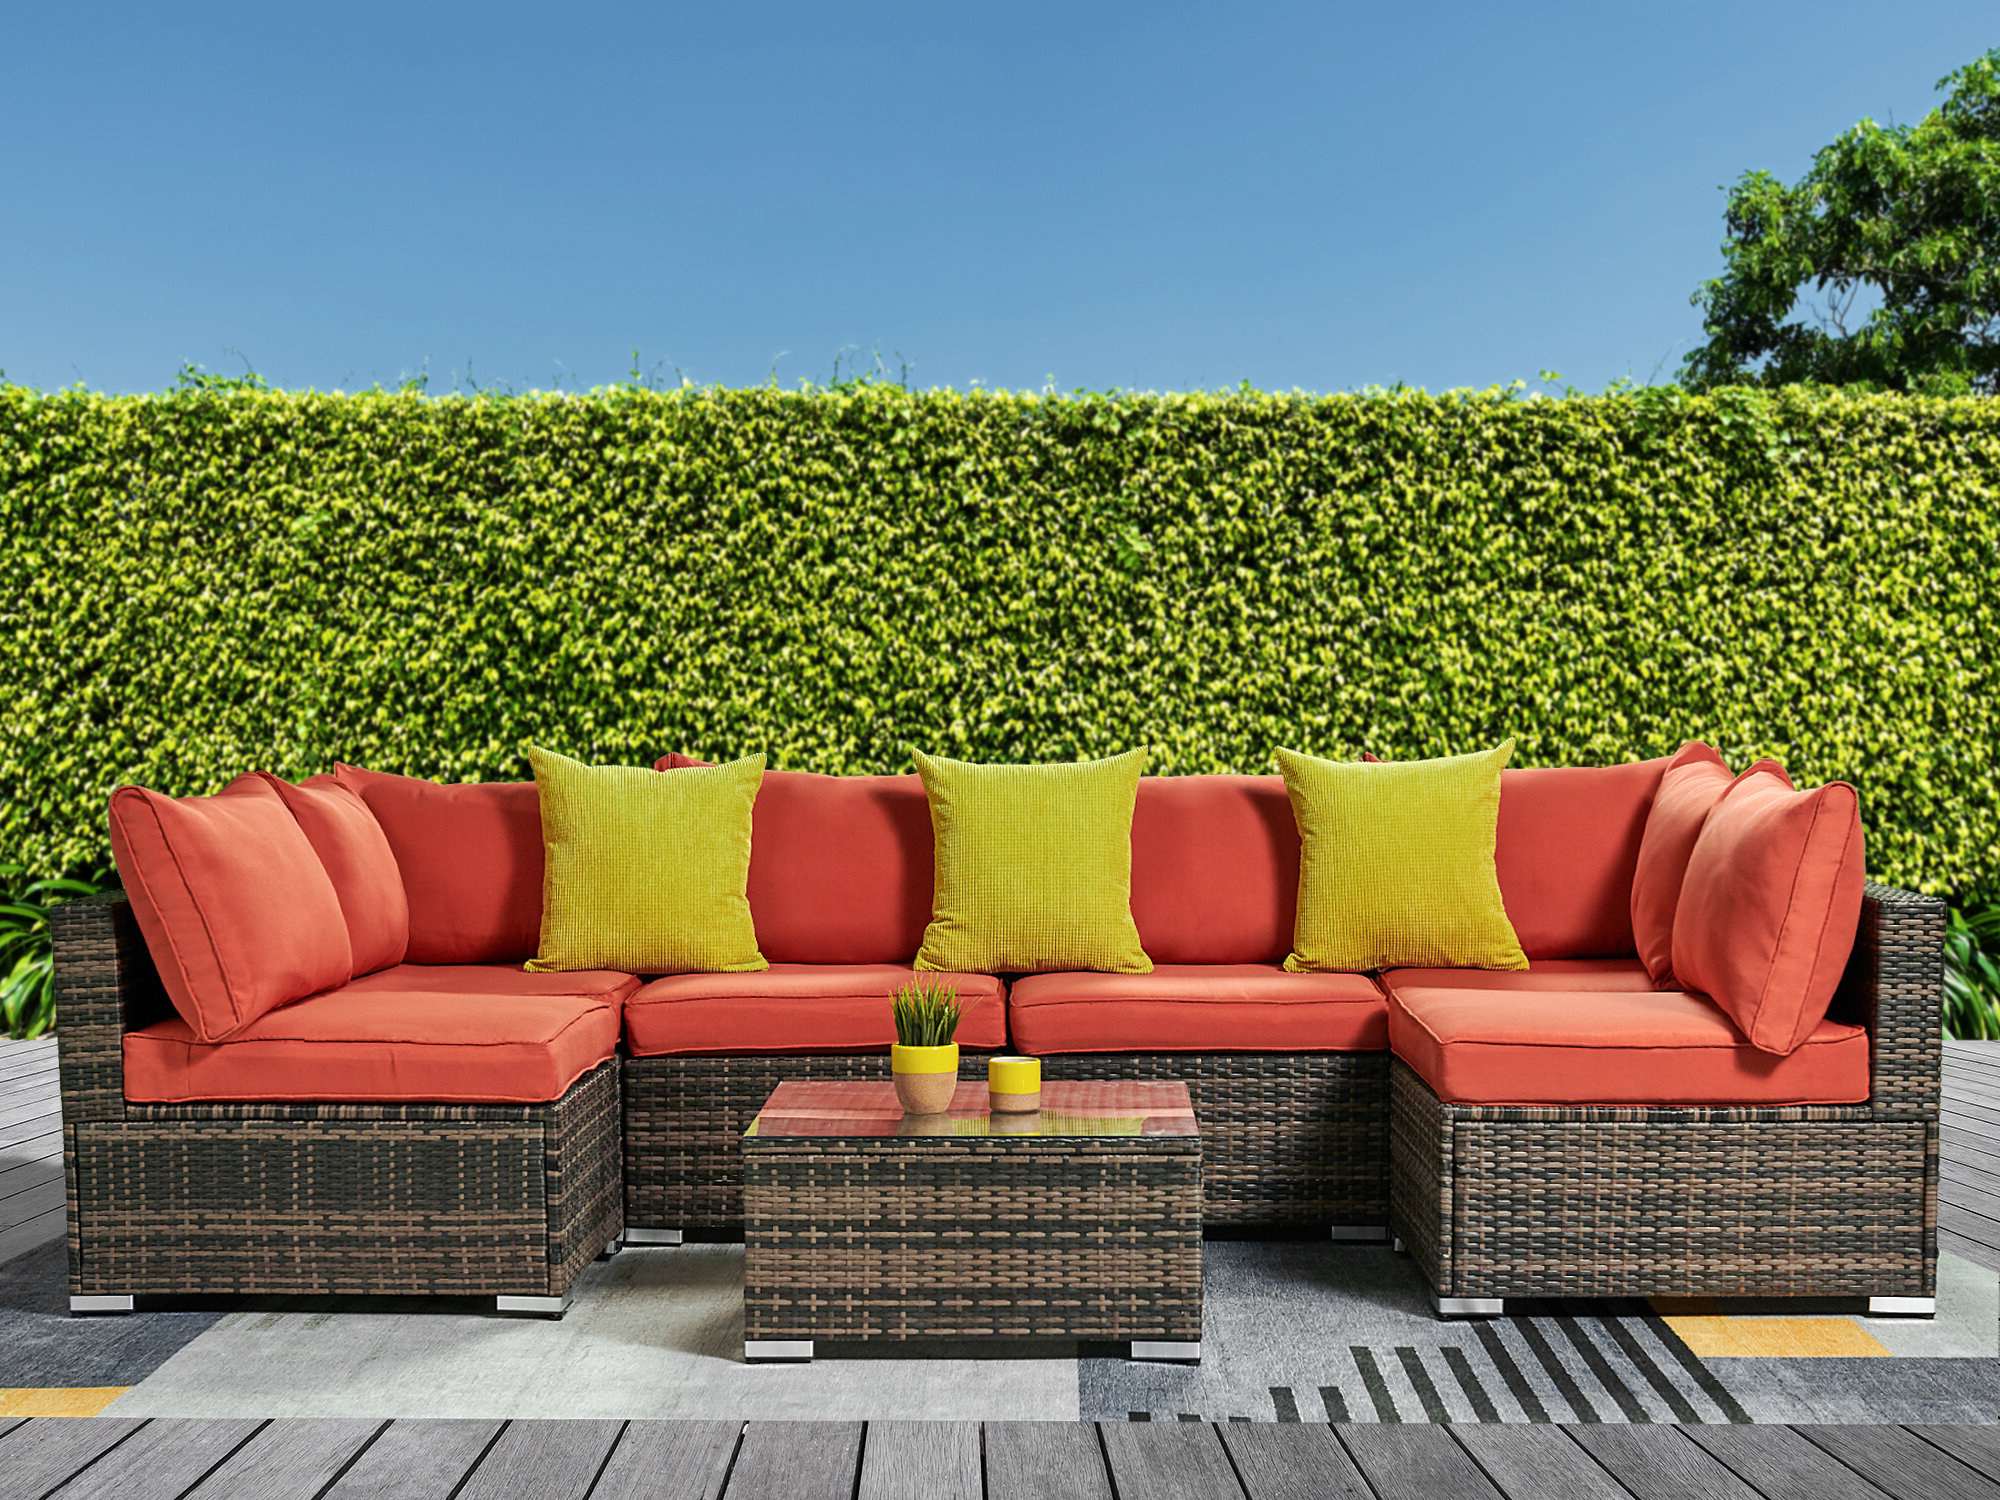 Fashionable Rowley Patio Sofas Set With Cushions With Regard To Safiya Patio Sectional With Cushions (View 3 of 20)